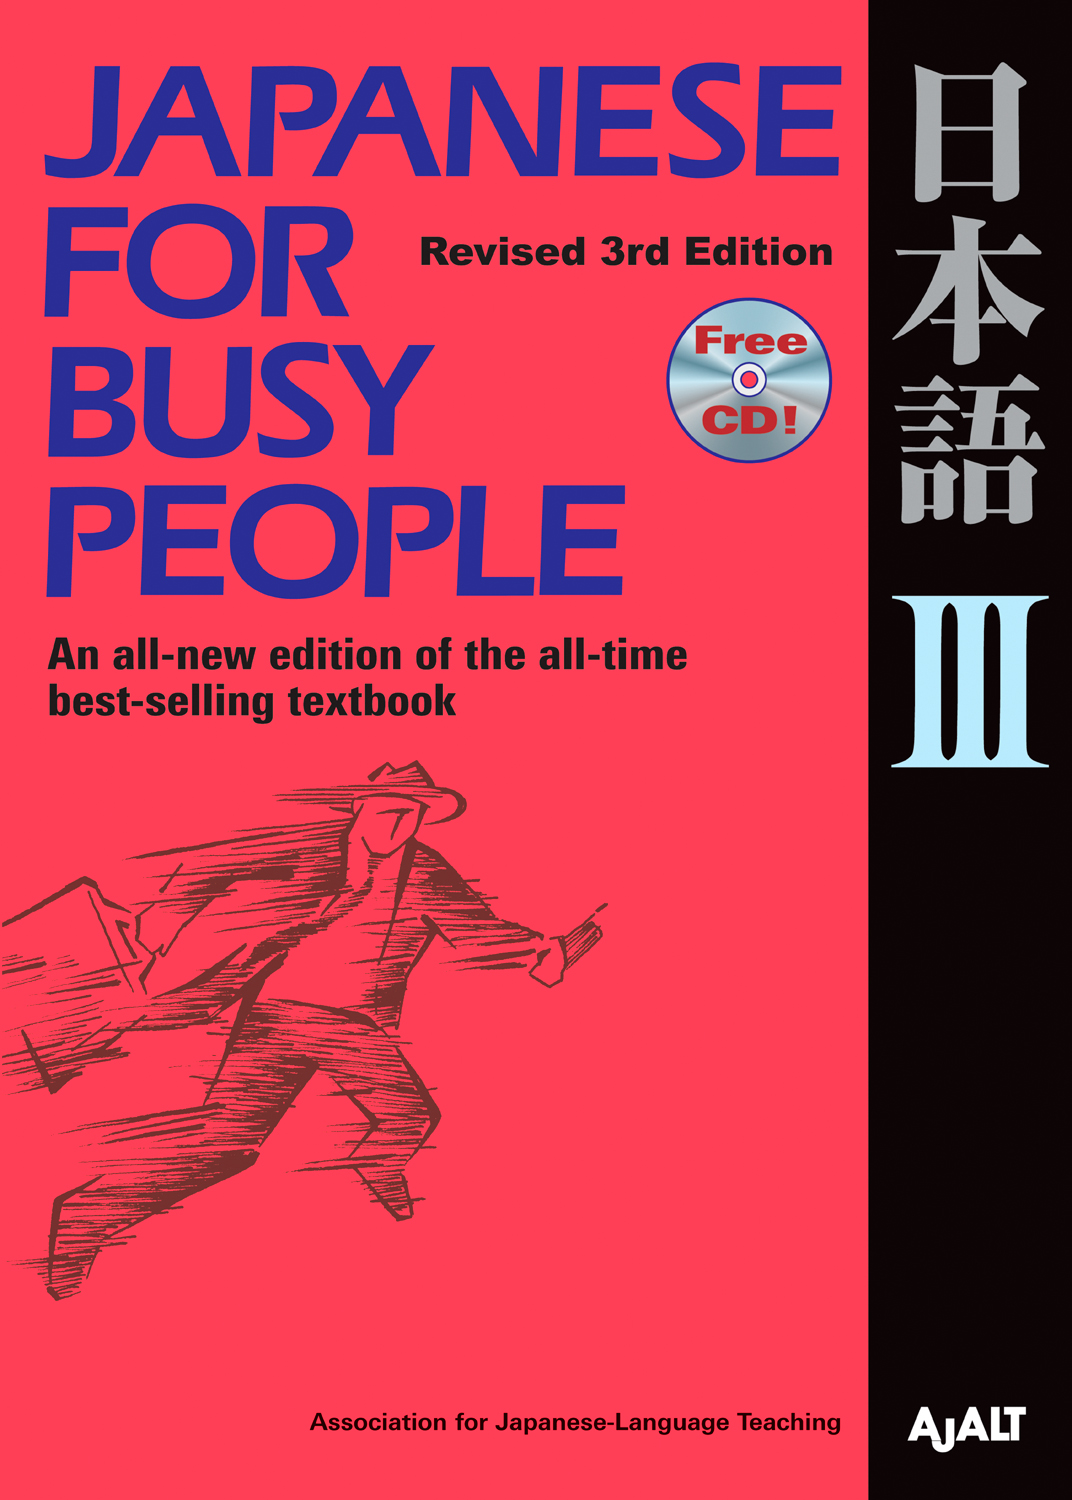 Cover of Japanese for Busy People Revised 3rd Edition III: An all-new edition of the all-time best-selling textbook.